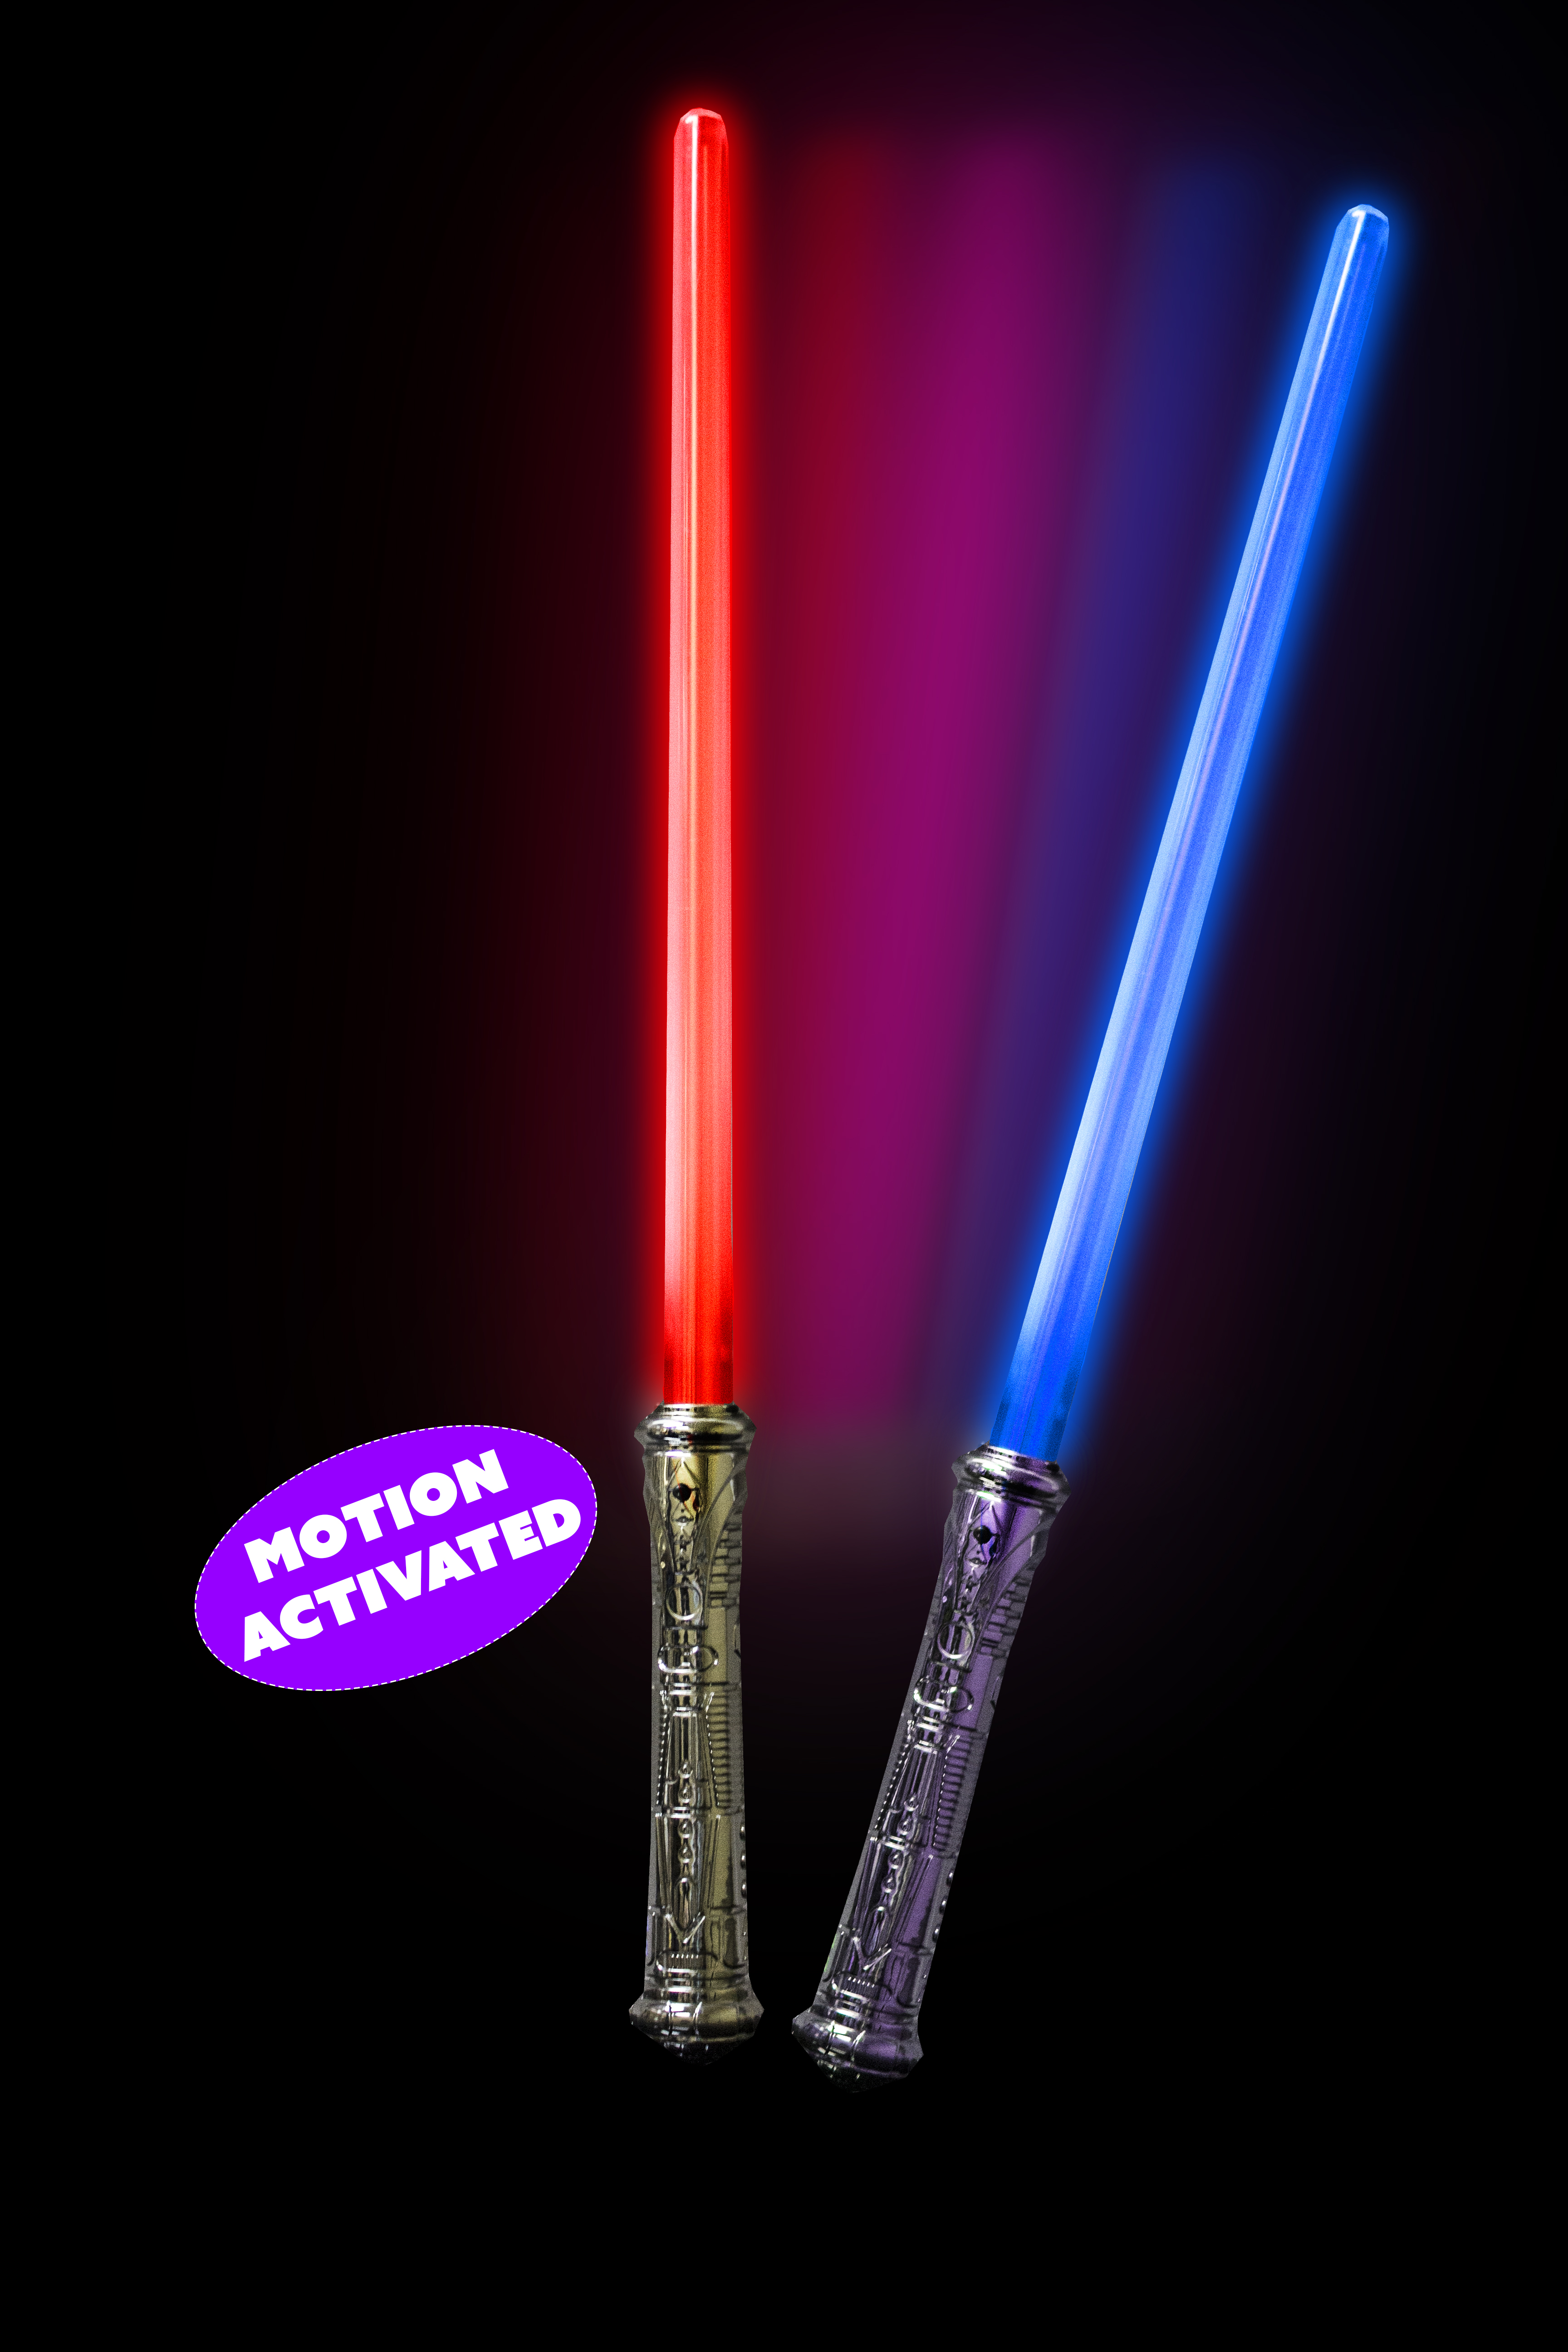 Fun Central X826 LED Light Up Motion Activated Light Saber